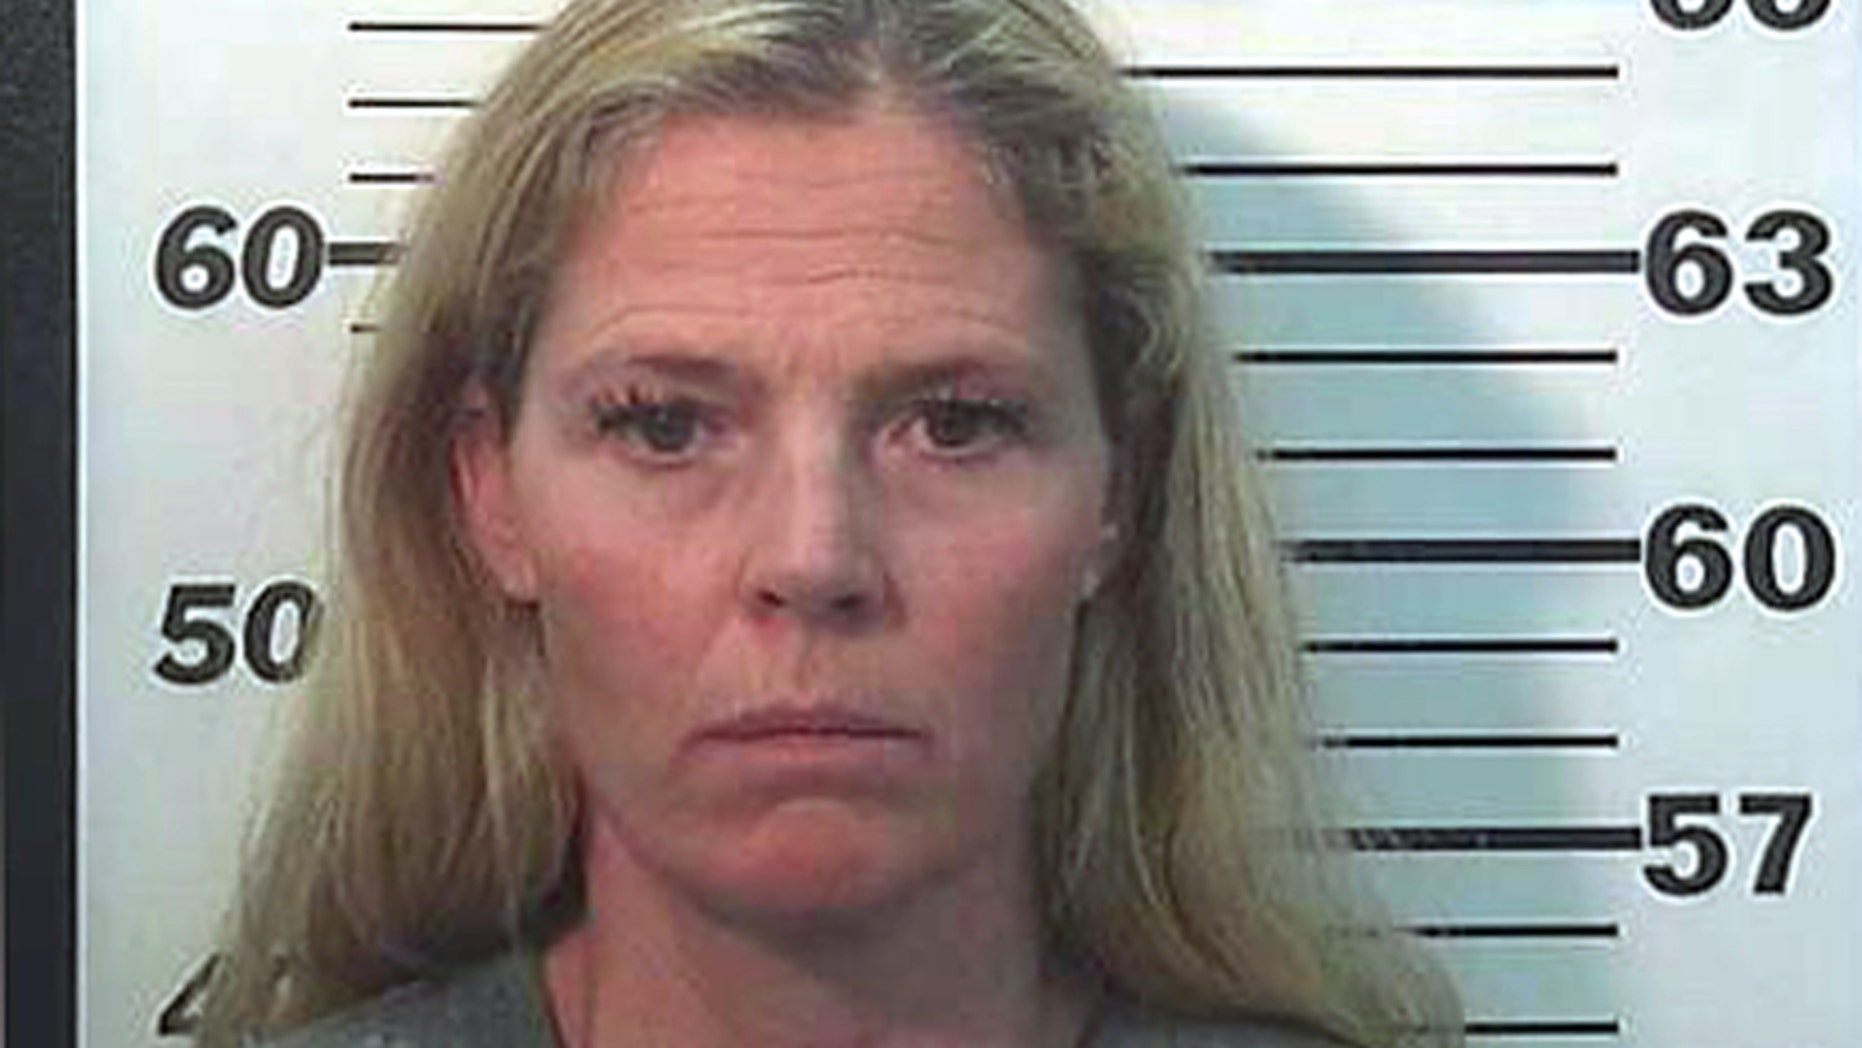 Former Olympic gold medalist skier Picabo Street is charged with assault and domestic violence.